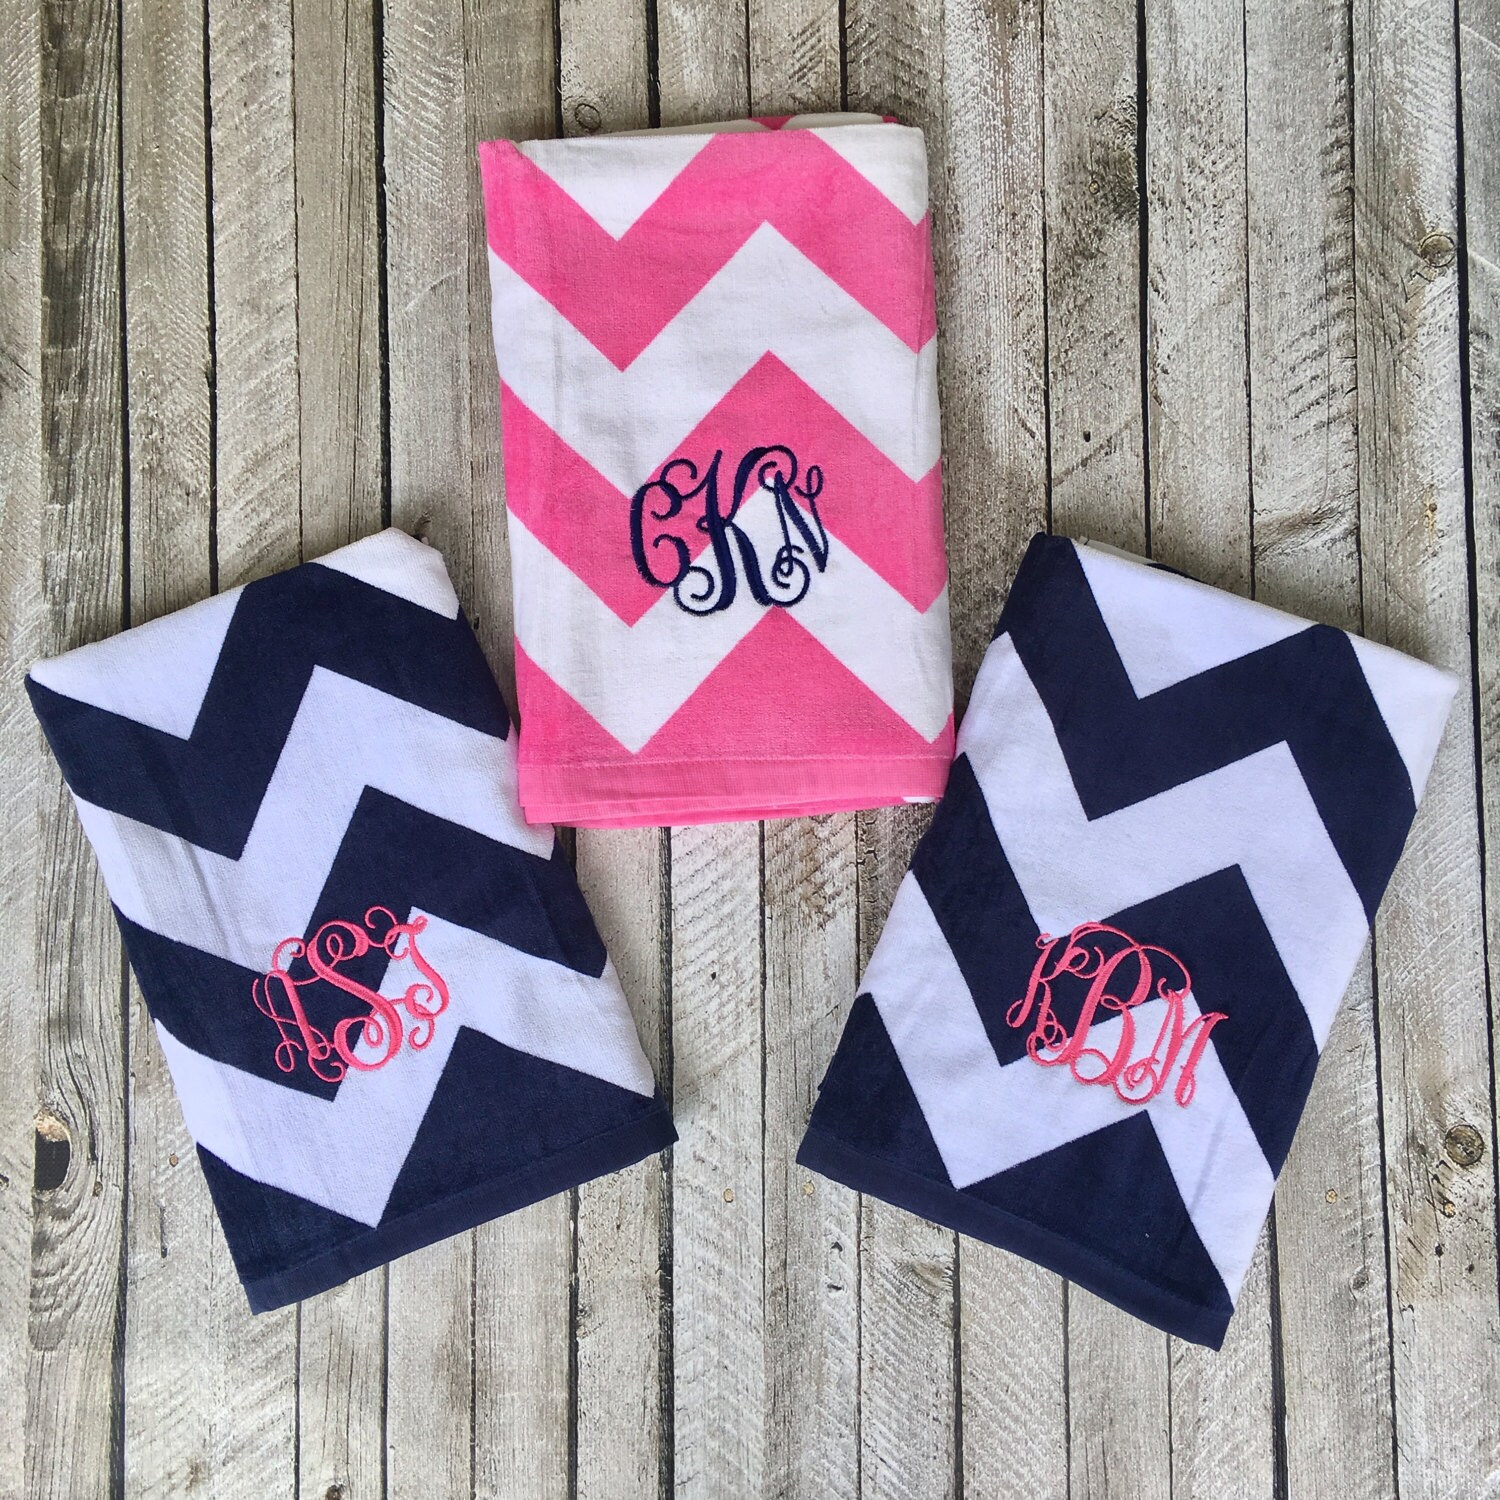 Monogrammed Beach Towels, Monogrammed gifts, Bridesmaid gifts ...